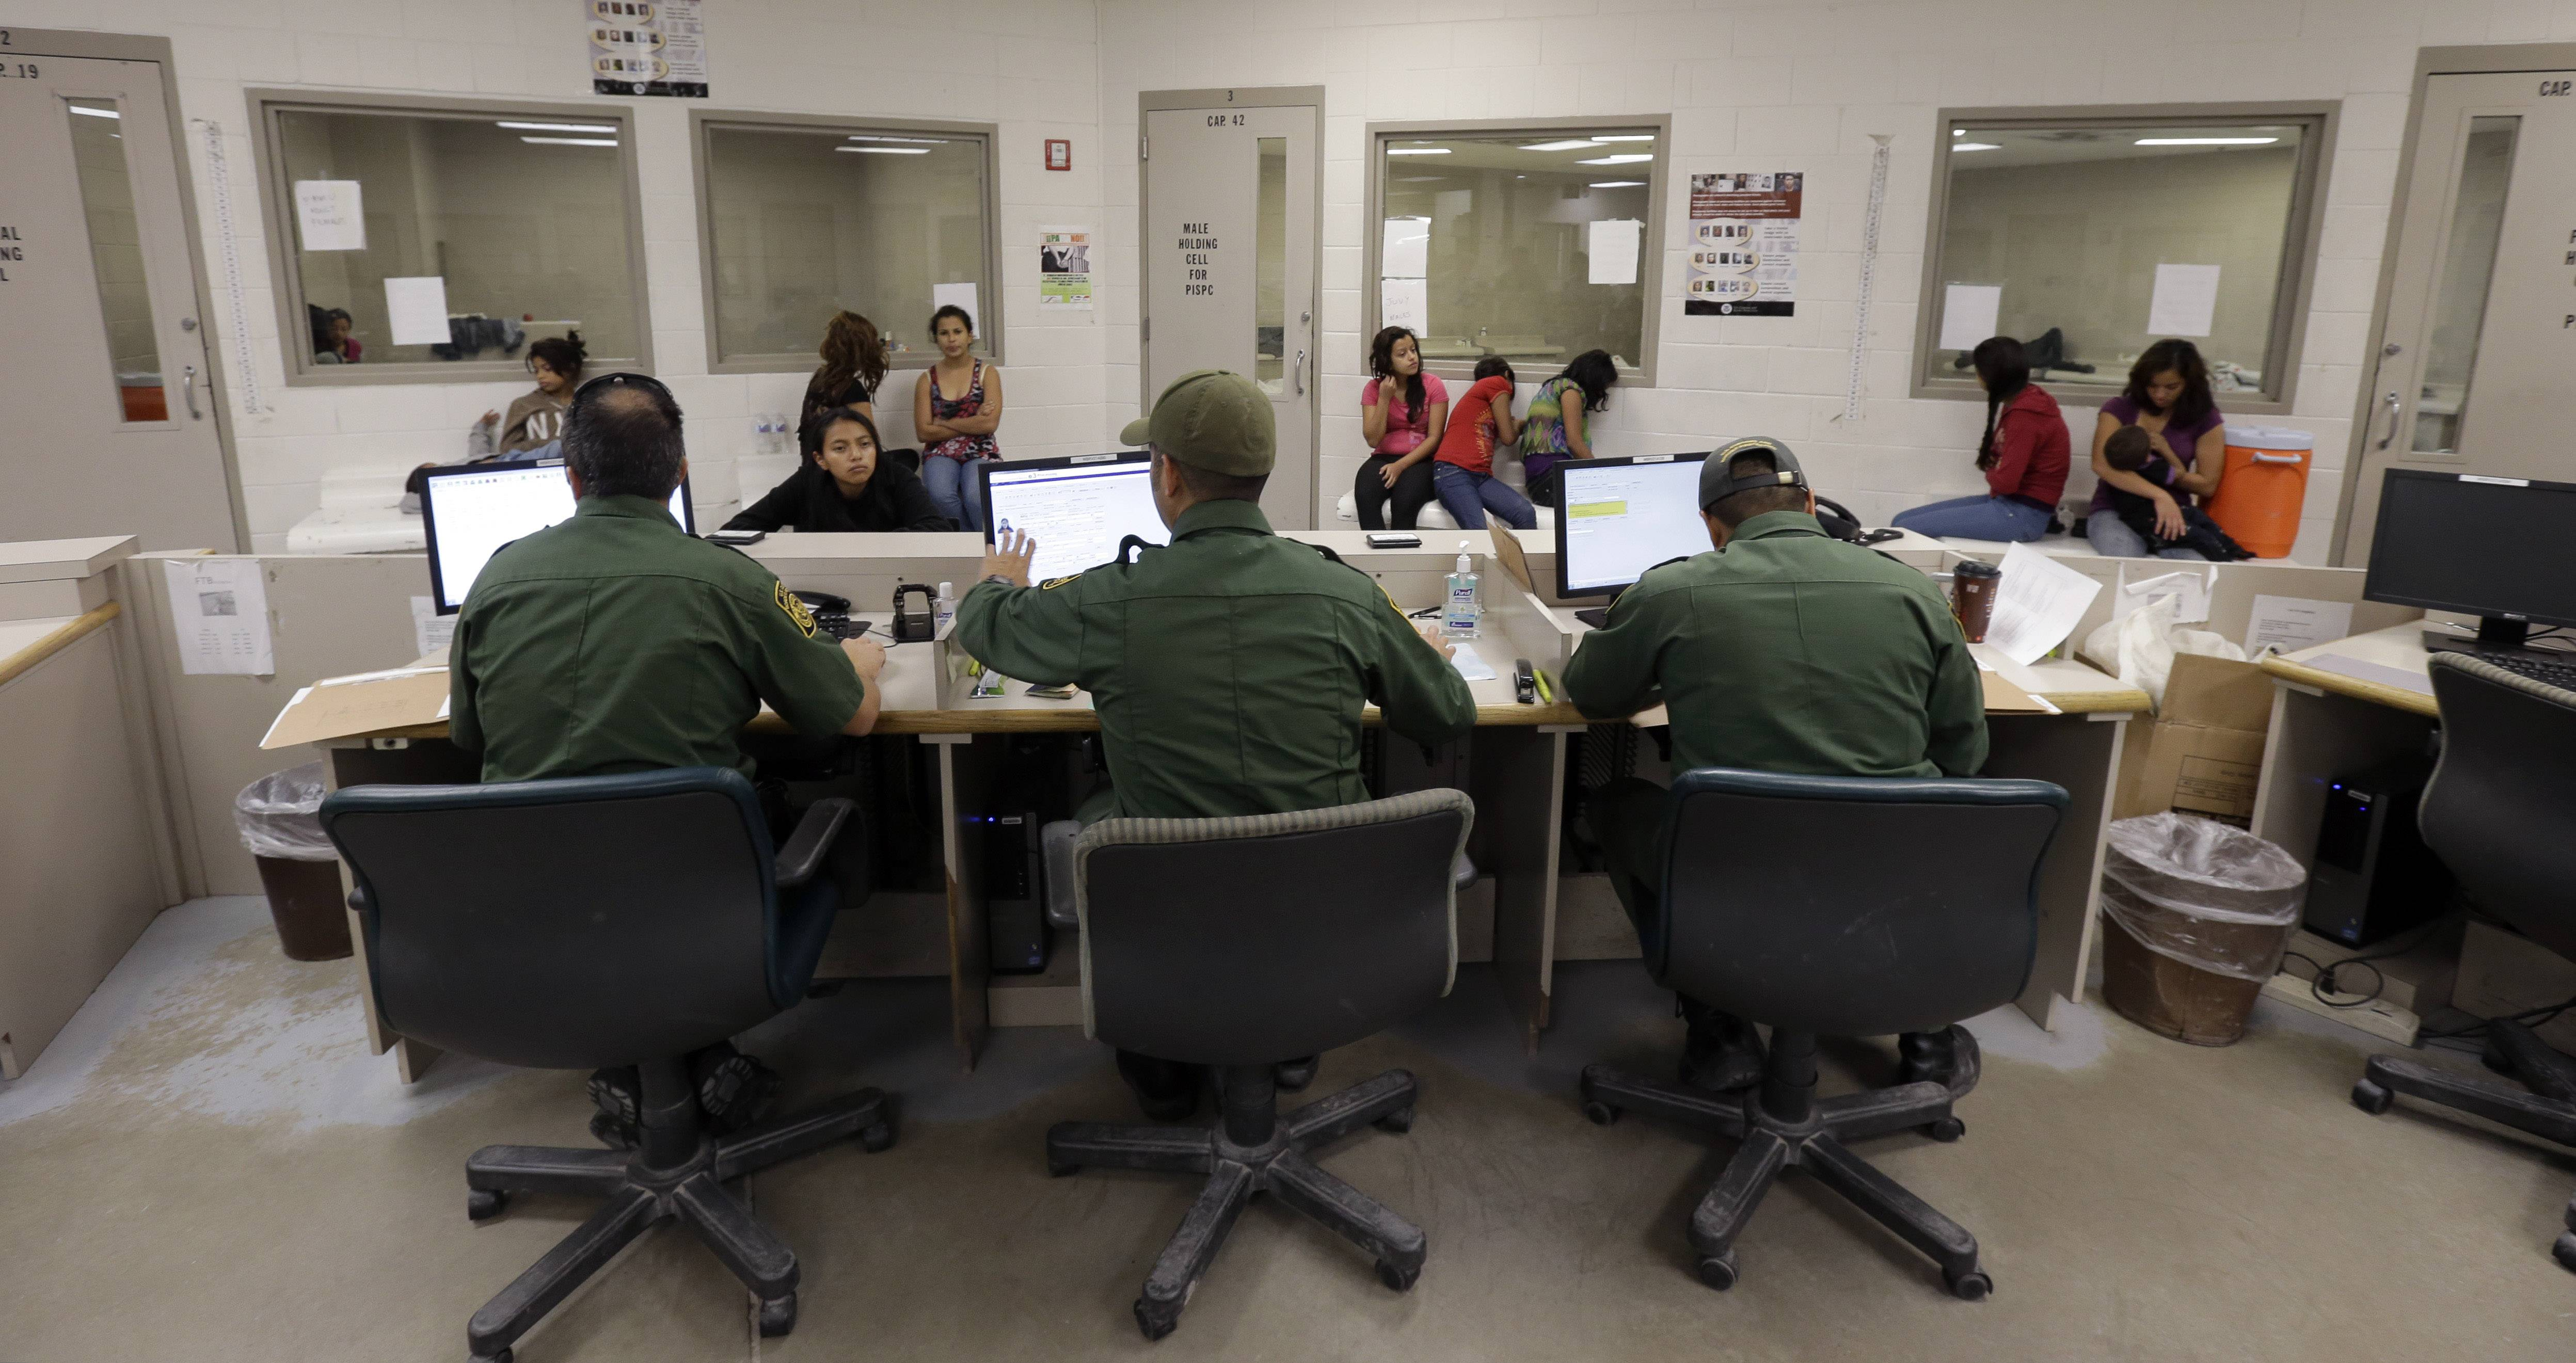 Immigration courts are speeding up hearings for the tens of thousands of Central American children caught on the U.S. border after criticism that the backlogged system is letting immigrants stay in the country for years while waiting for their cases to be heard.